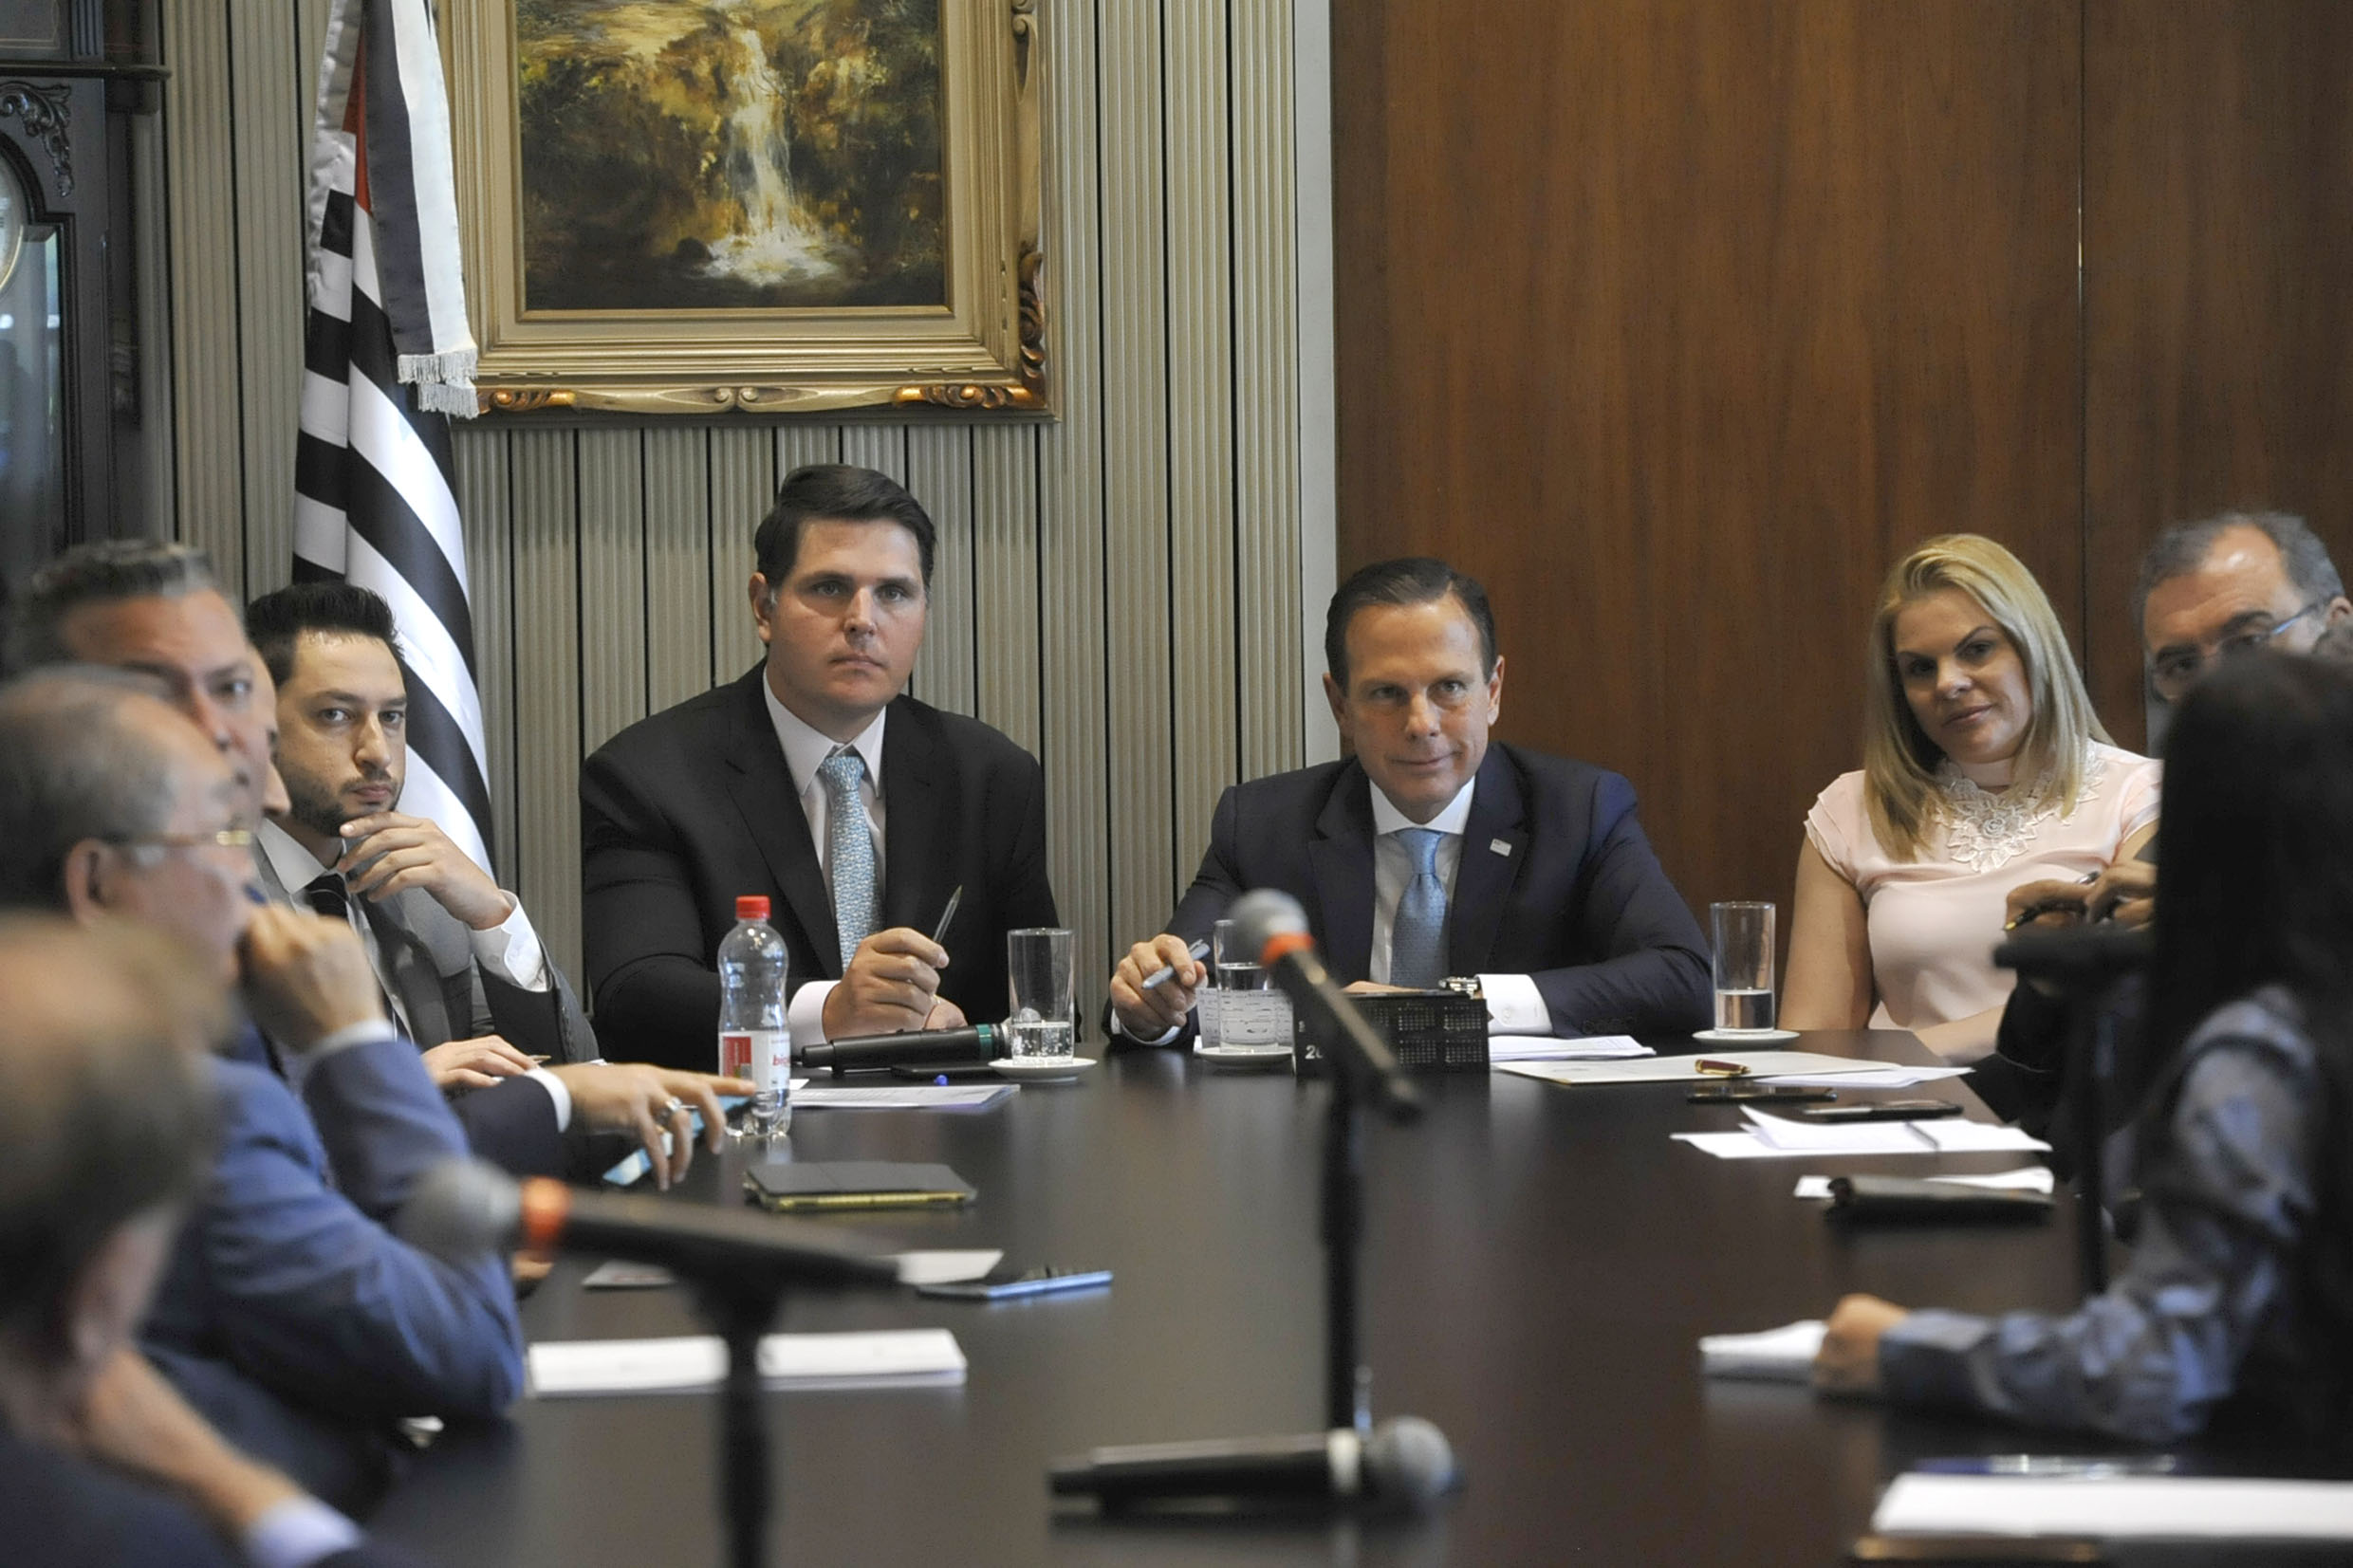 Parlamentares na visita<a style='float:right' href='https://www3.al.sp.gov.br/repositorio/noticia/N-08-2019/fg237255.jpg' target=_blank><img src='/_img/material-file-download-white.png' width='14px' alt='Clique para baixar a imagem'></a>